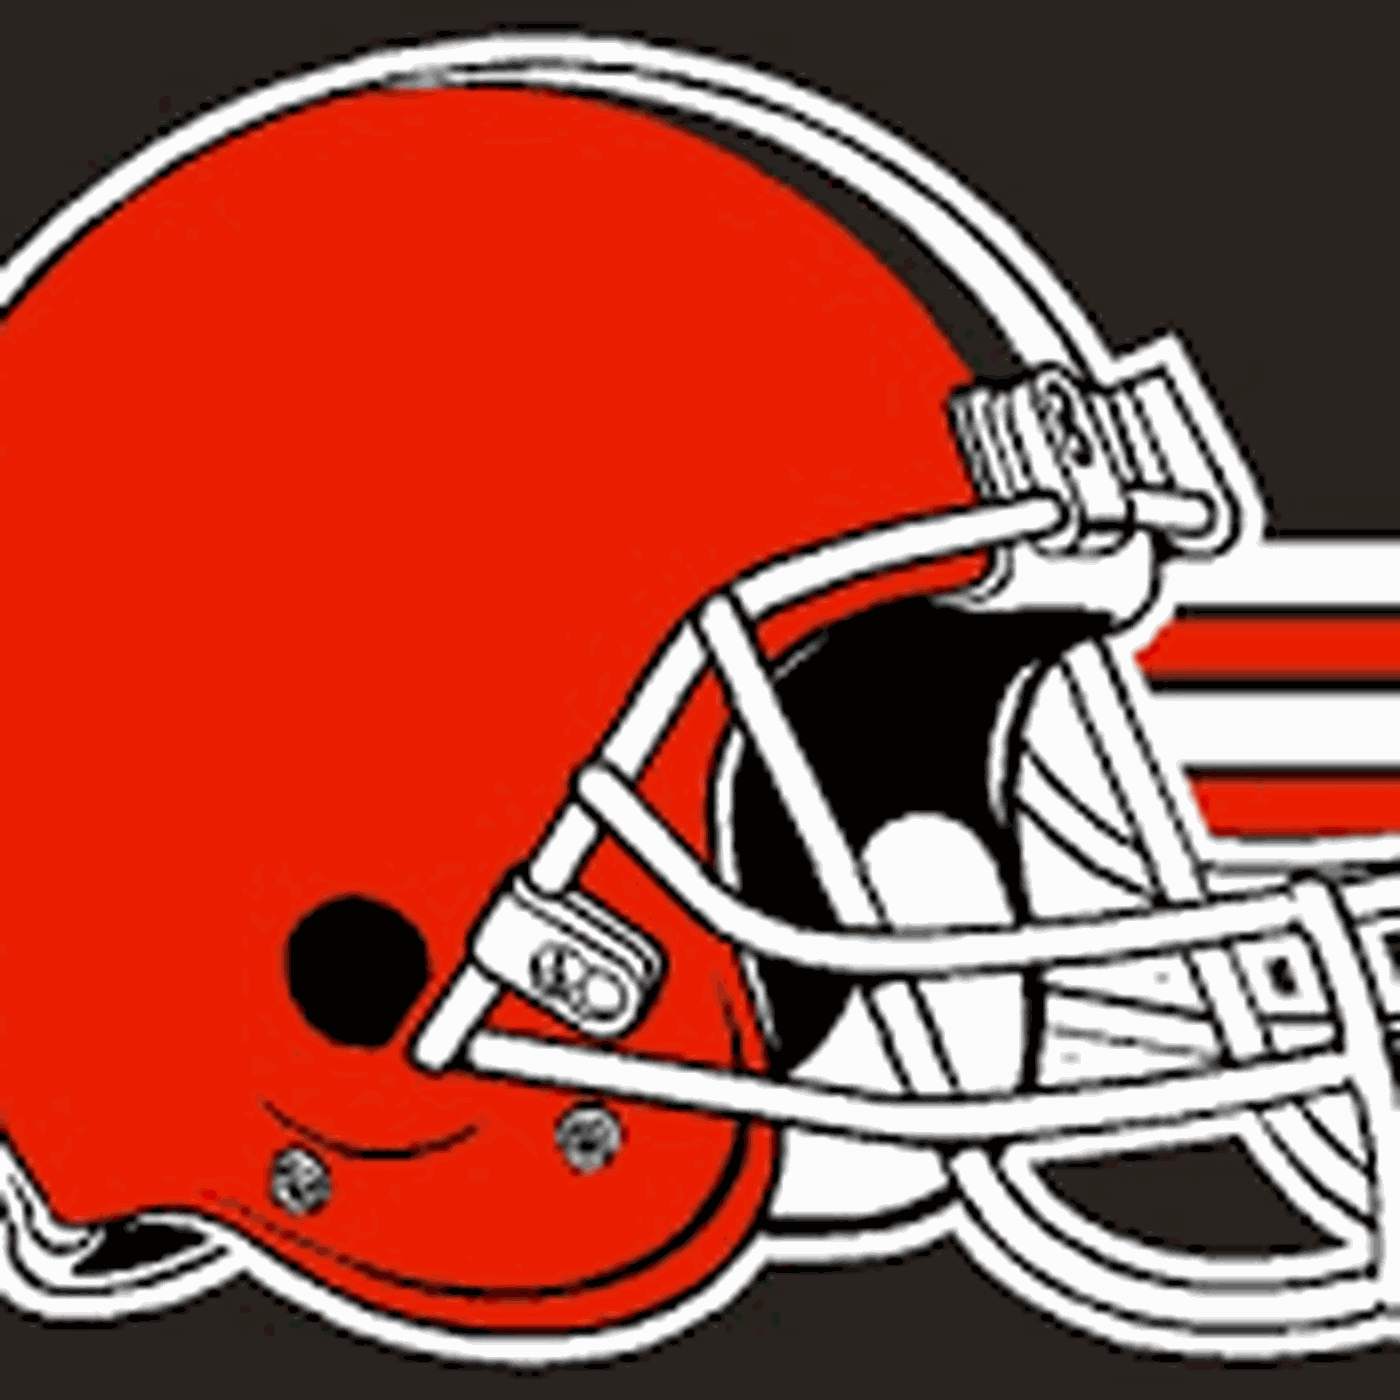 Cleveland browns helmet black and white clipart picture black and white download Cleveland Browns\' Helmet History - Dawgs By Nature picture black and white download